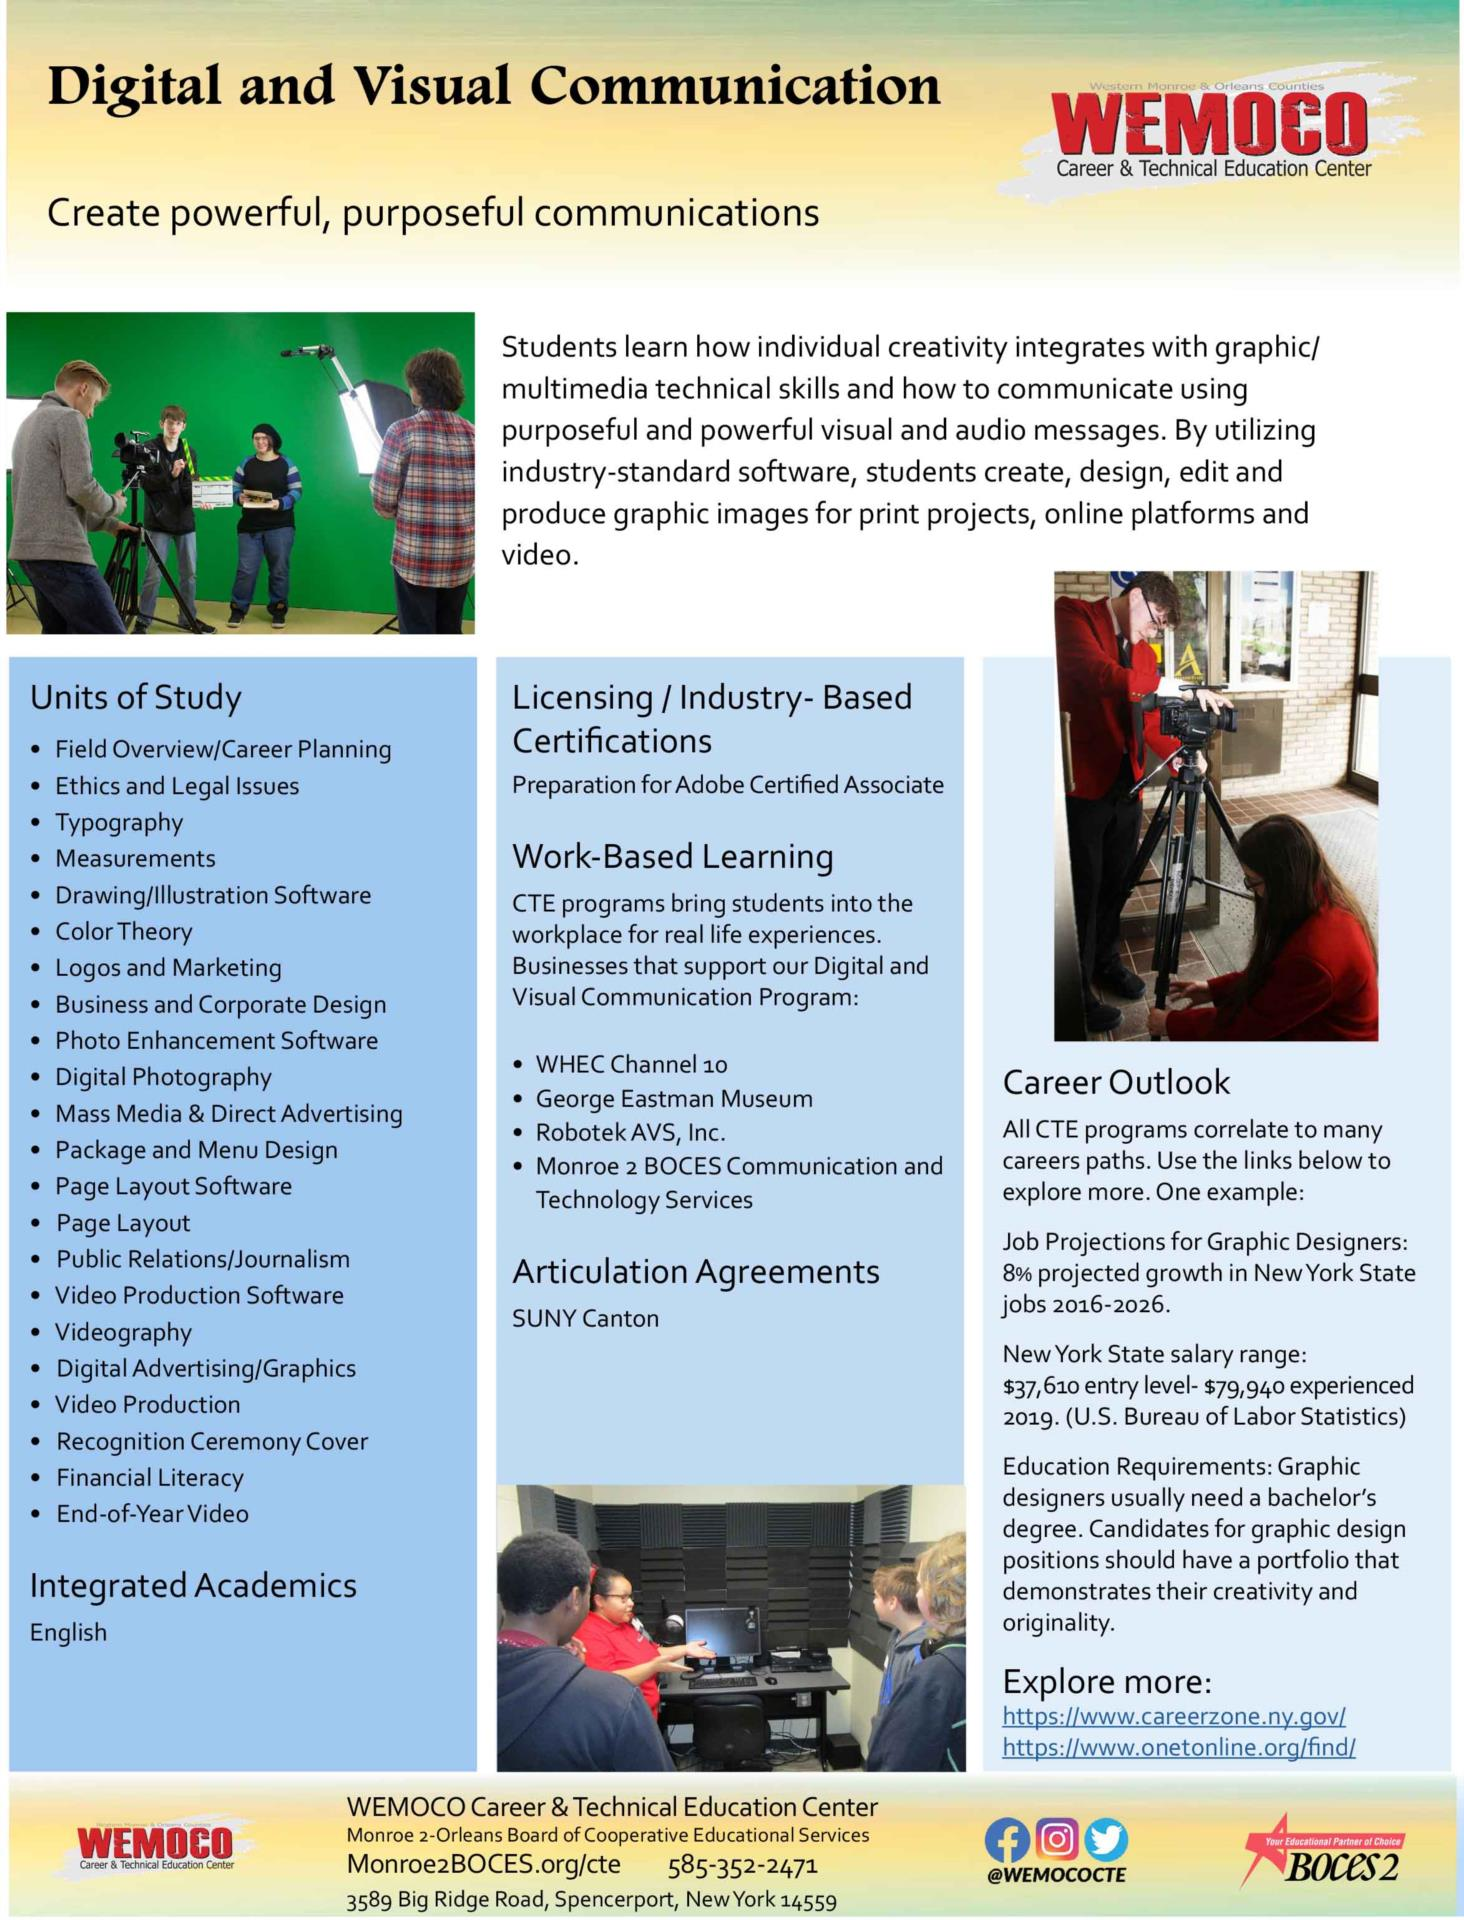 Download a PDF overview of the Digital and Visual Communication program information